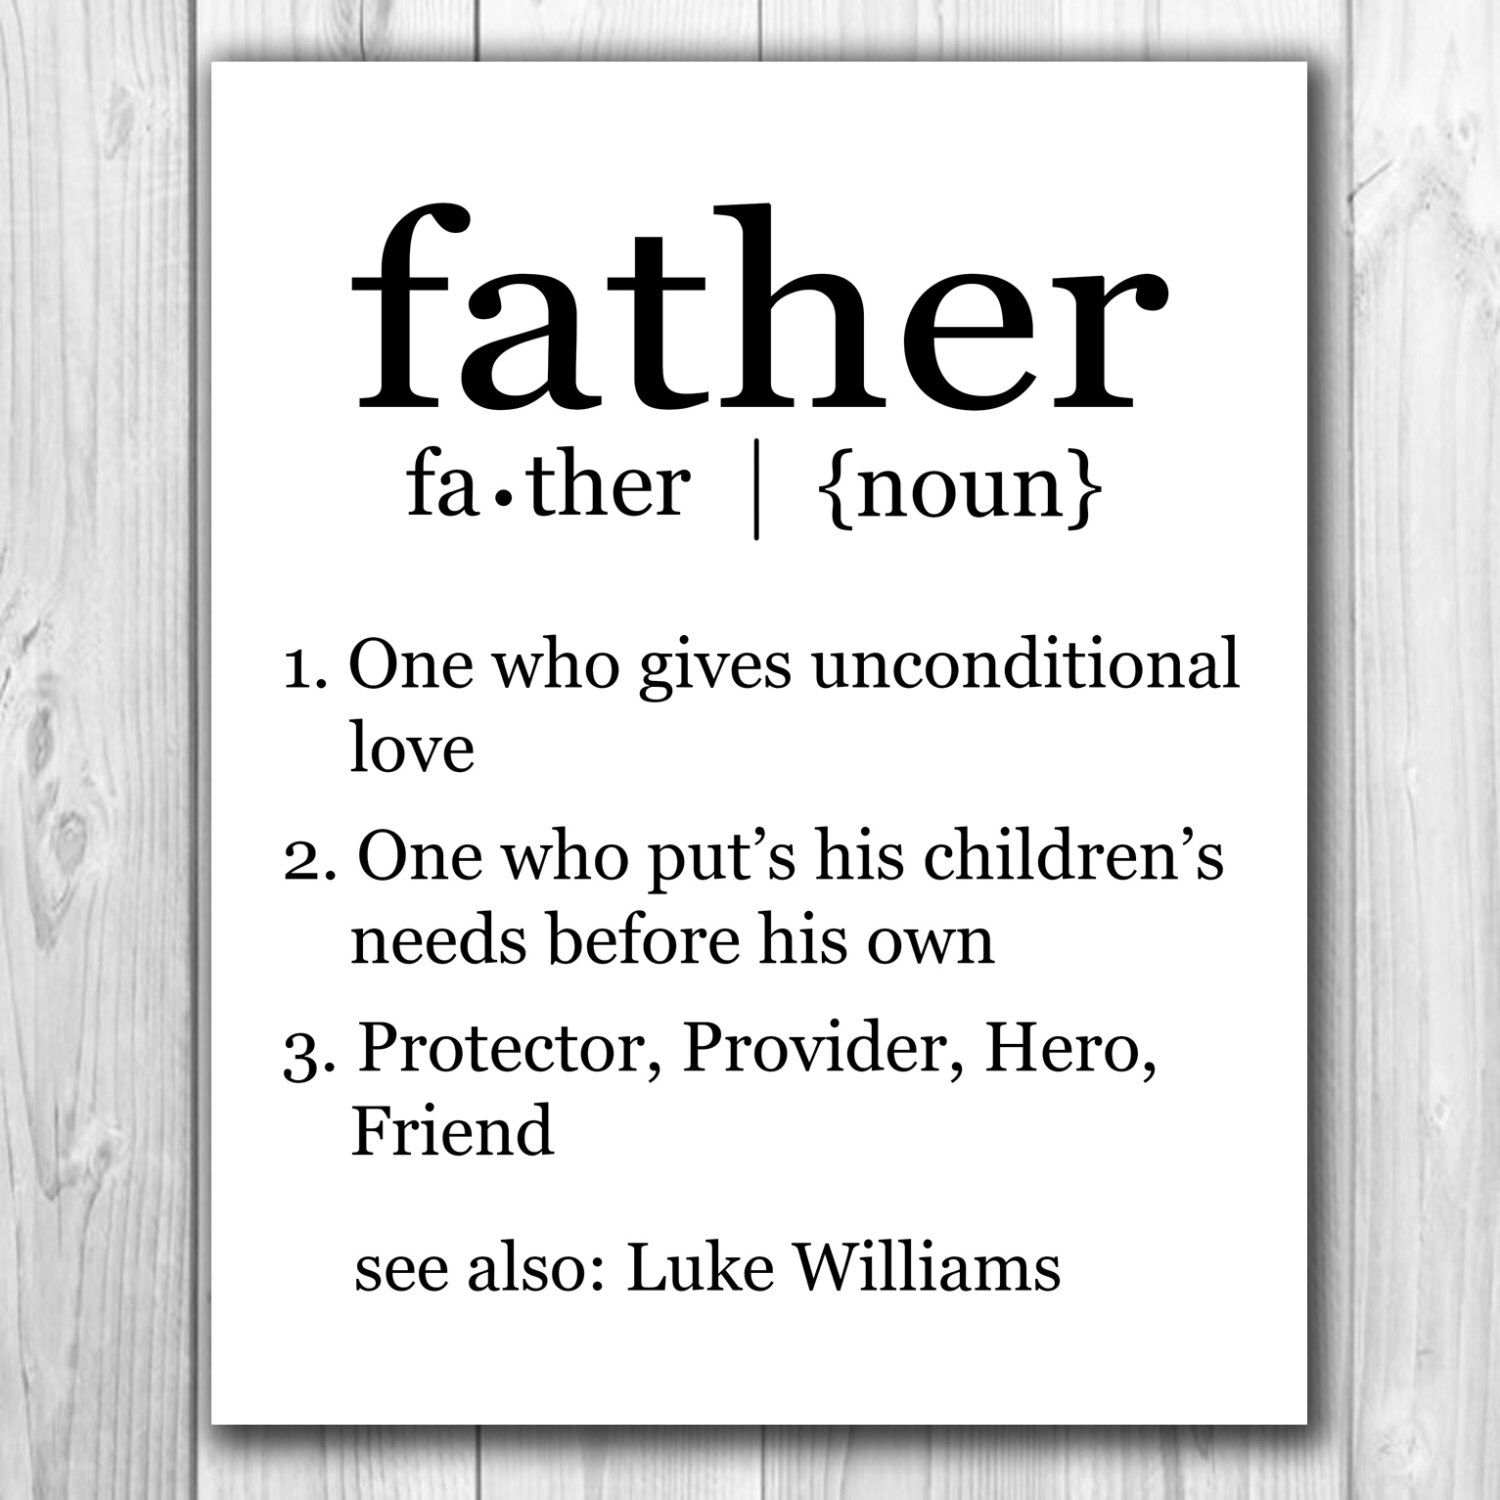 Best 25+ Father definition ideas on Pinterest | About ...